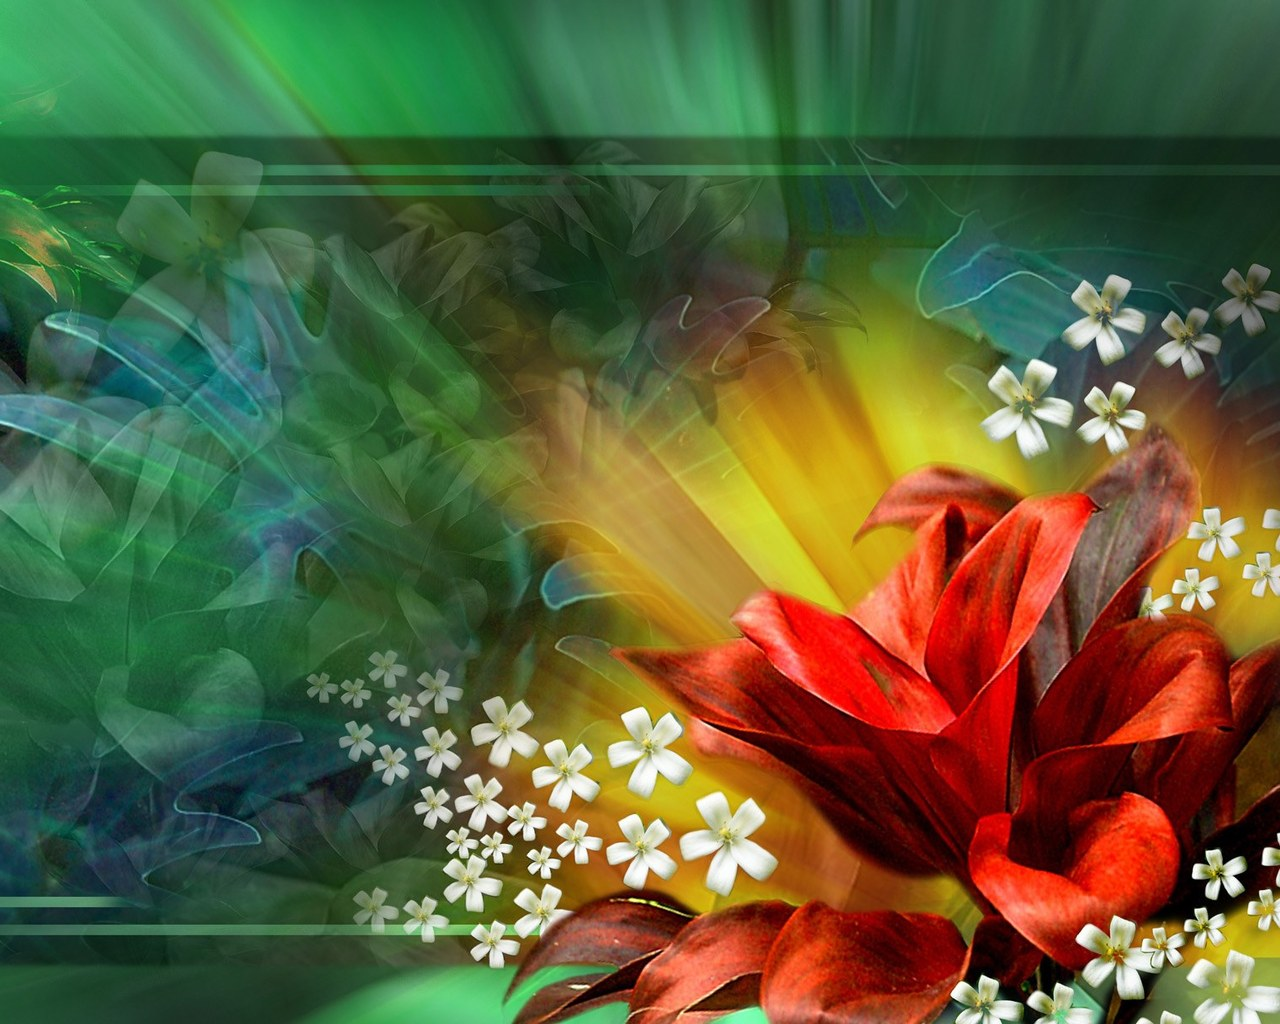 Desktop 3D Animated Background Wallpapers And Screensavers your pc 1280x1024